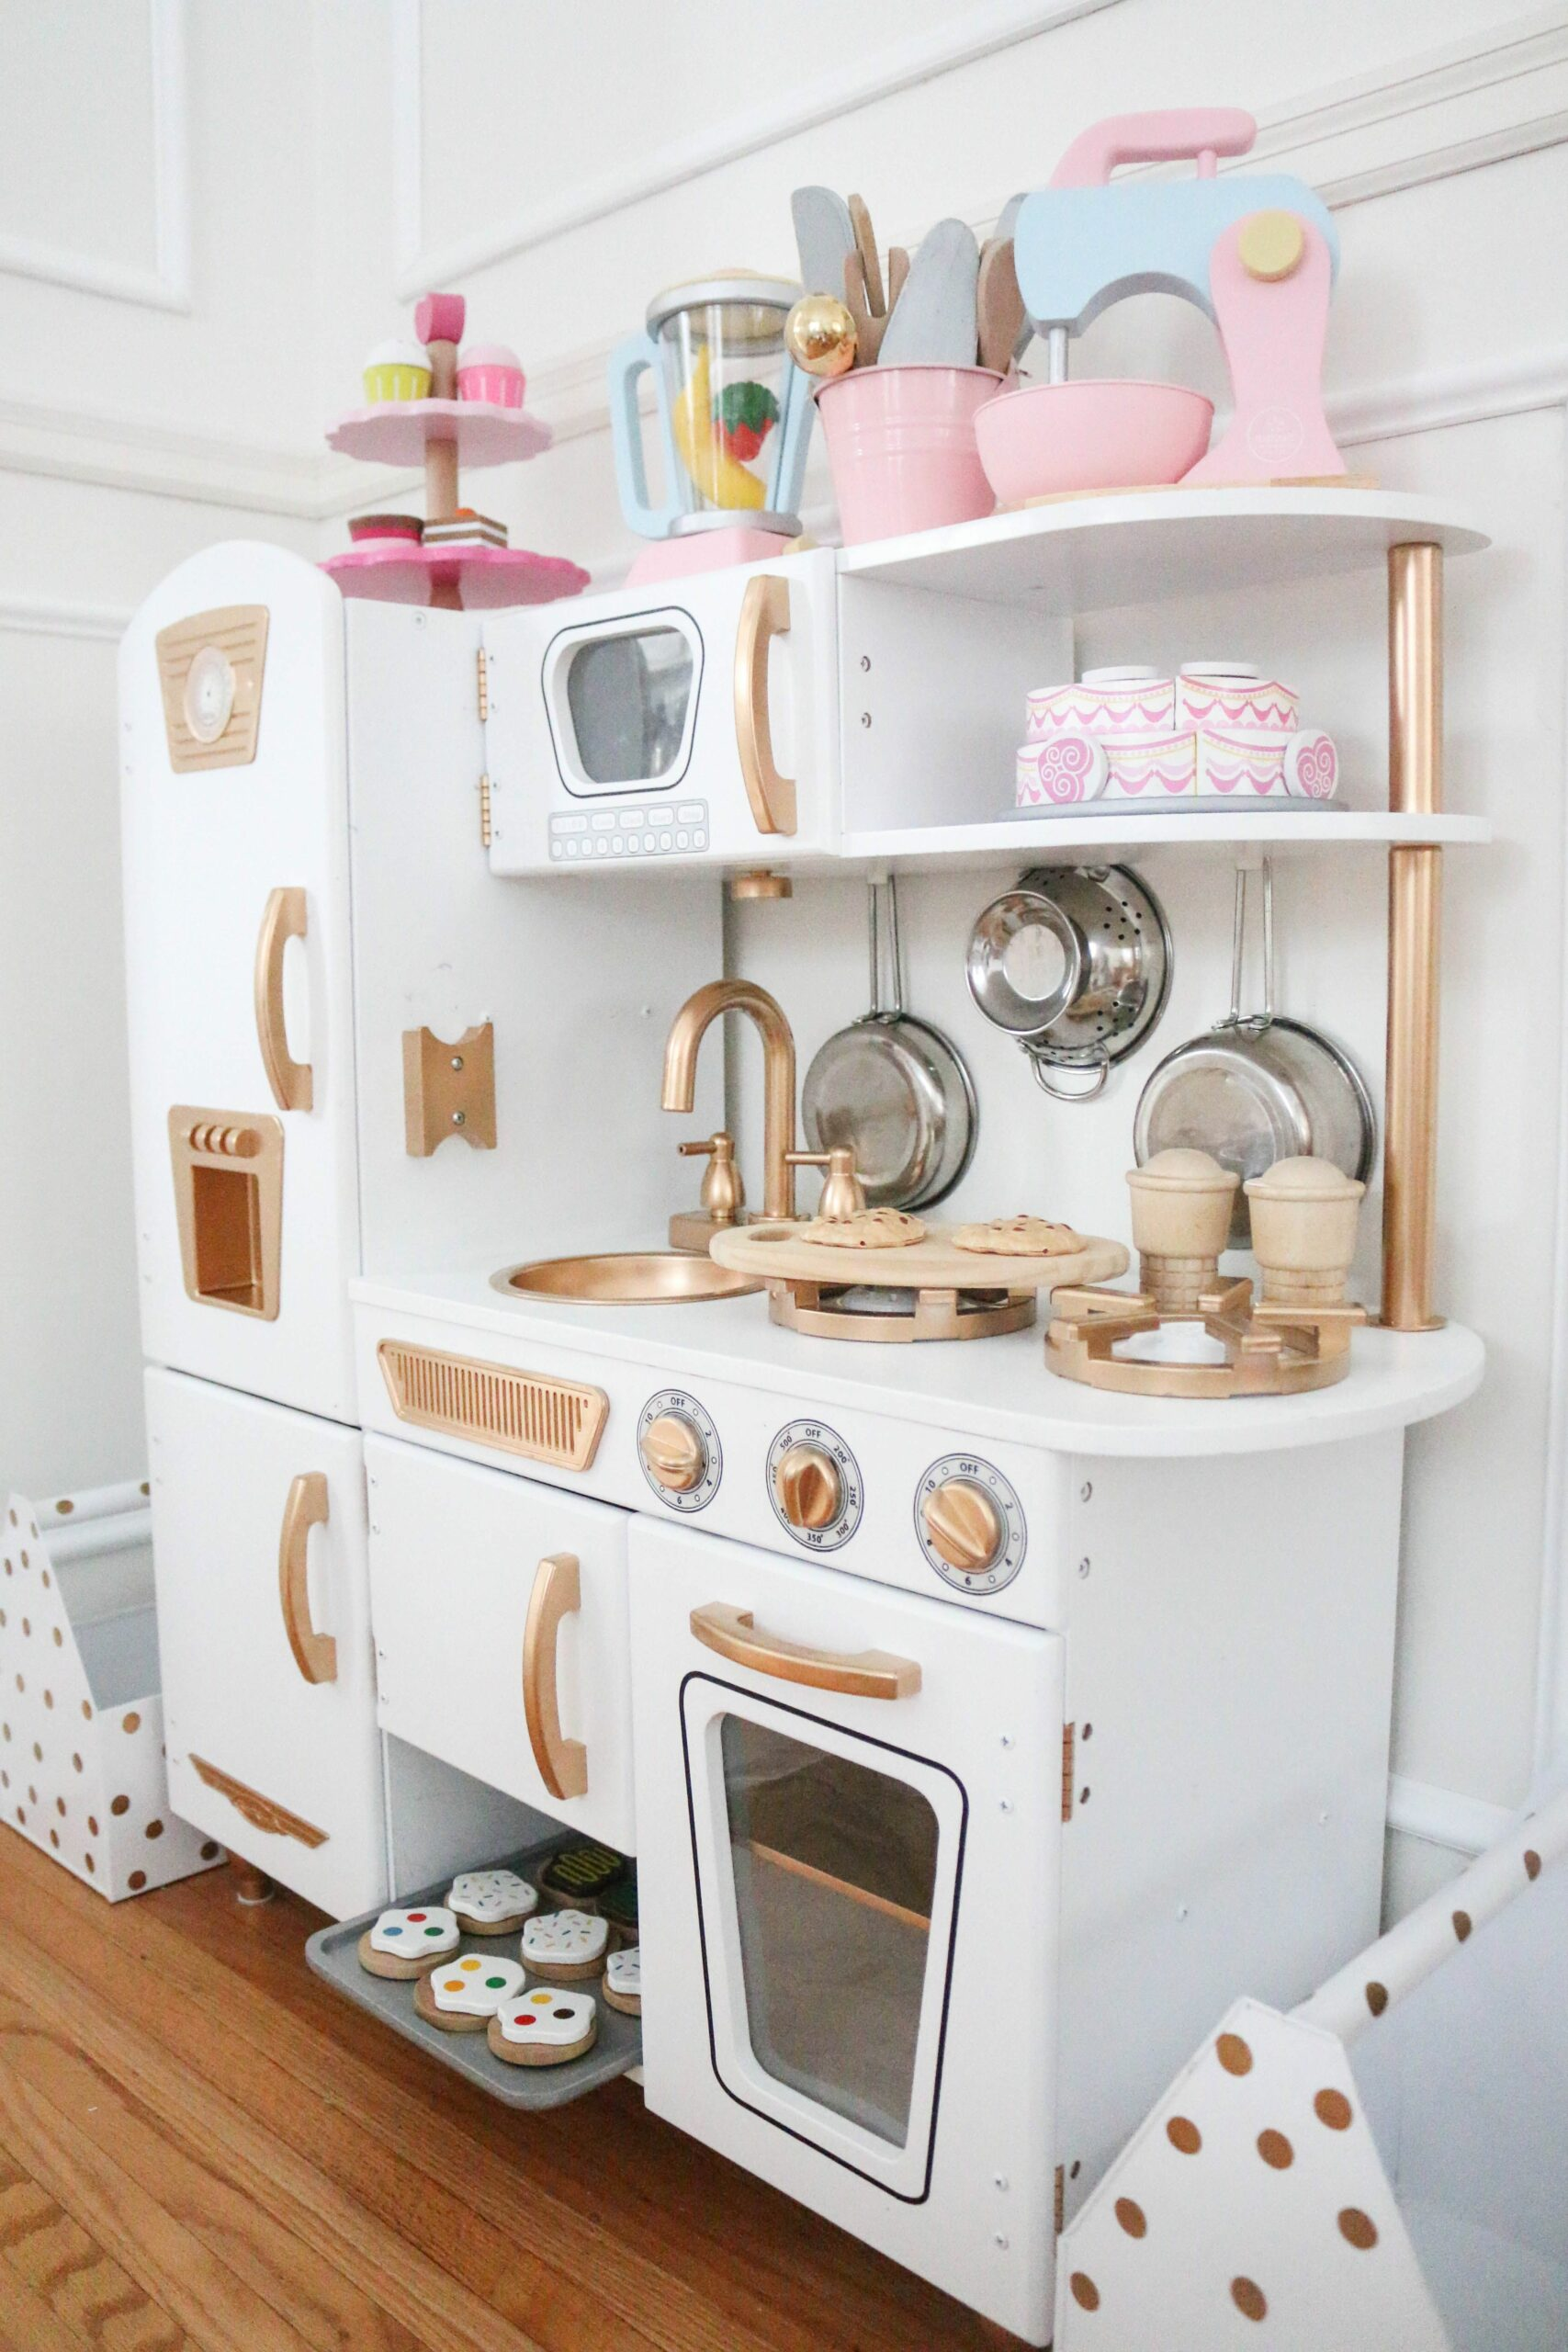 White Kitchen Set For Toddlers